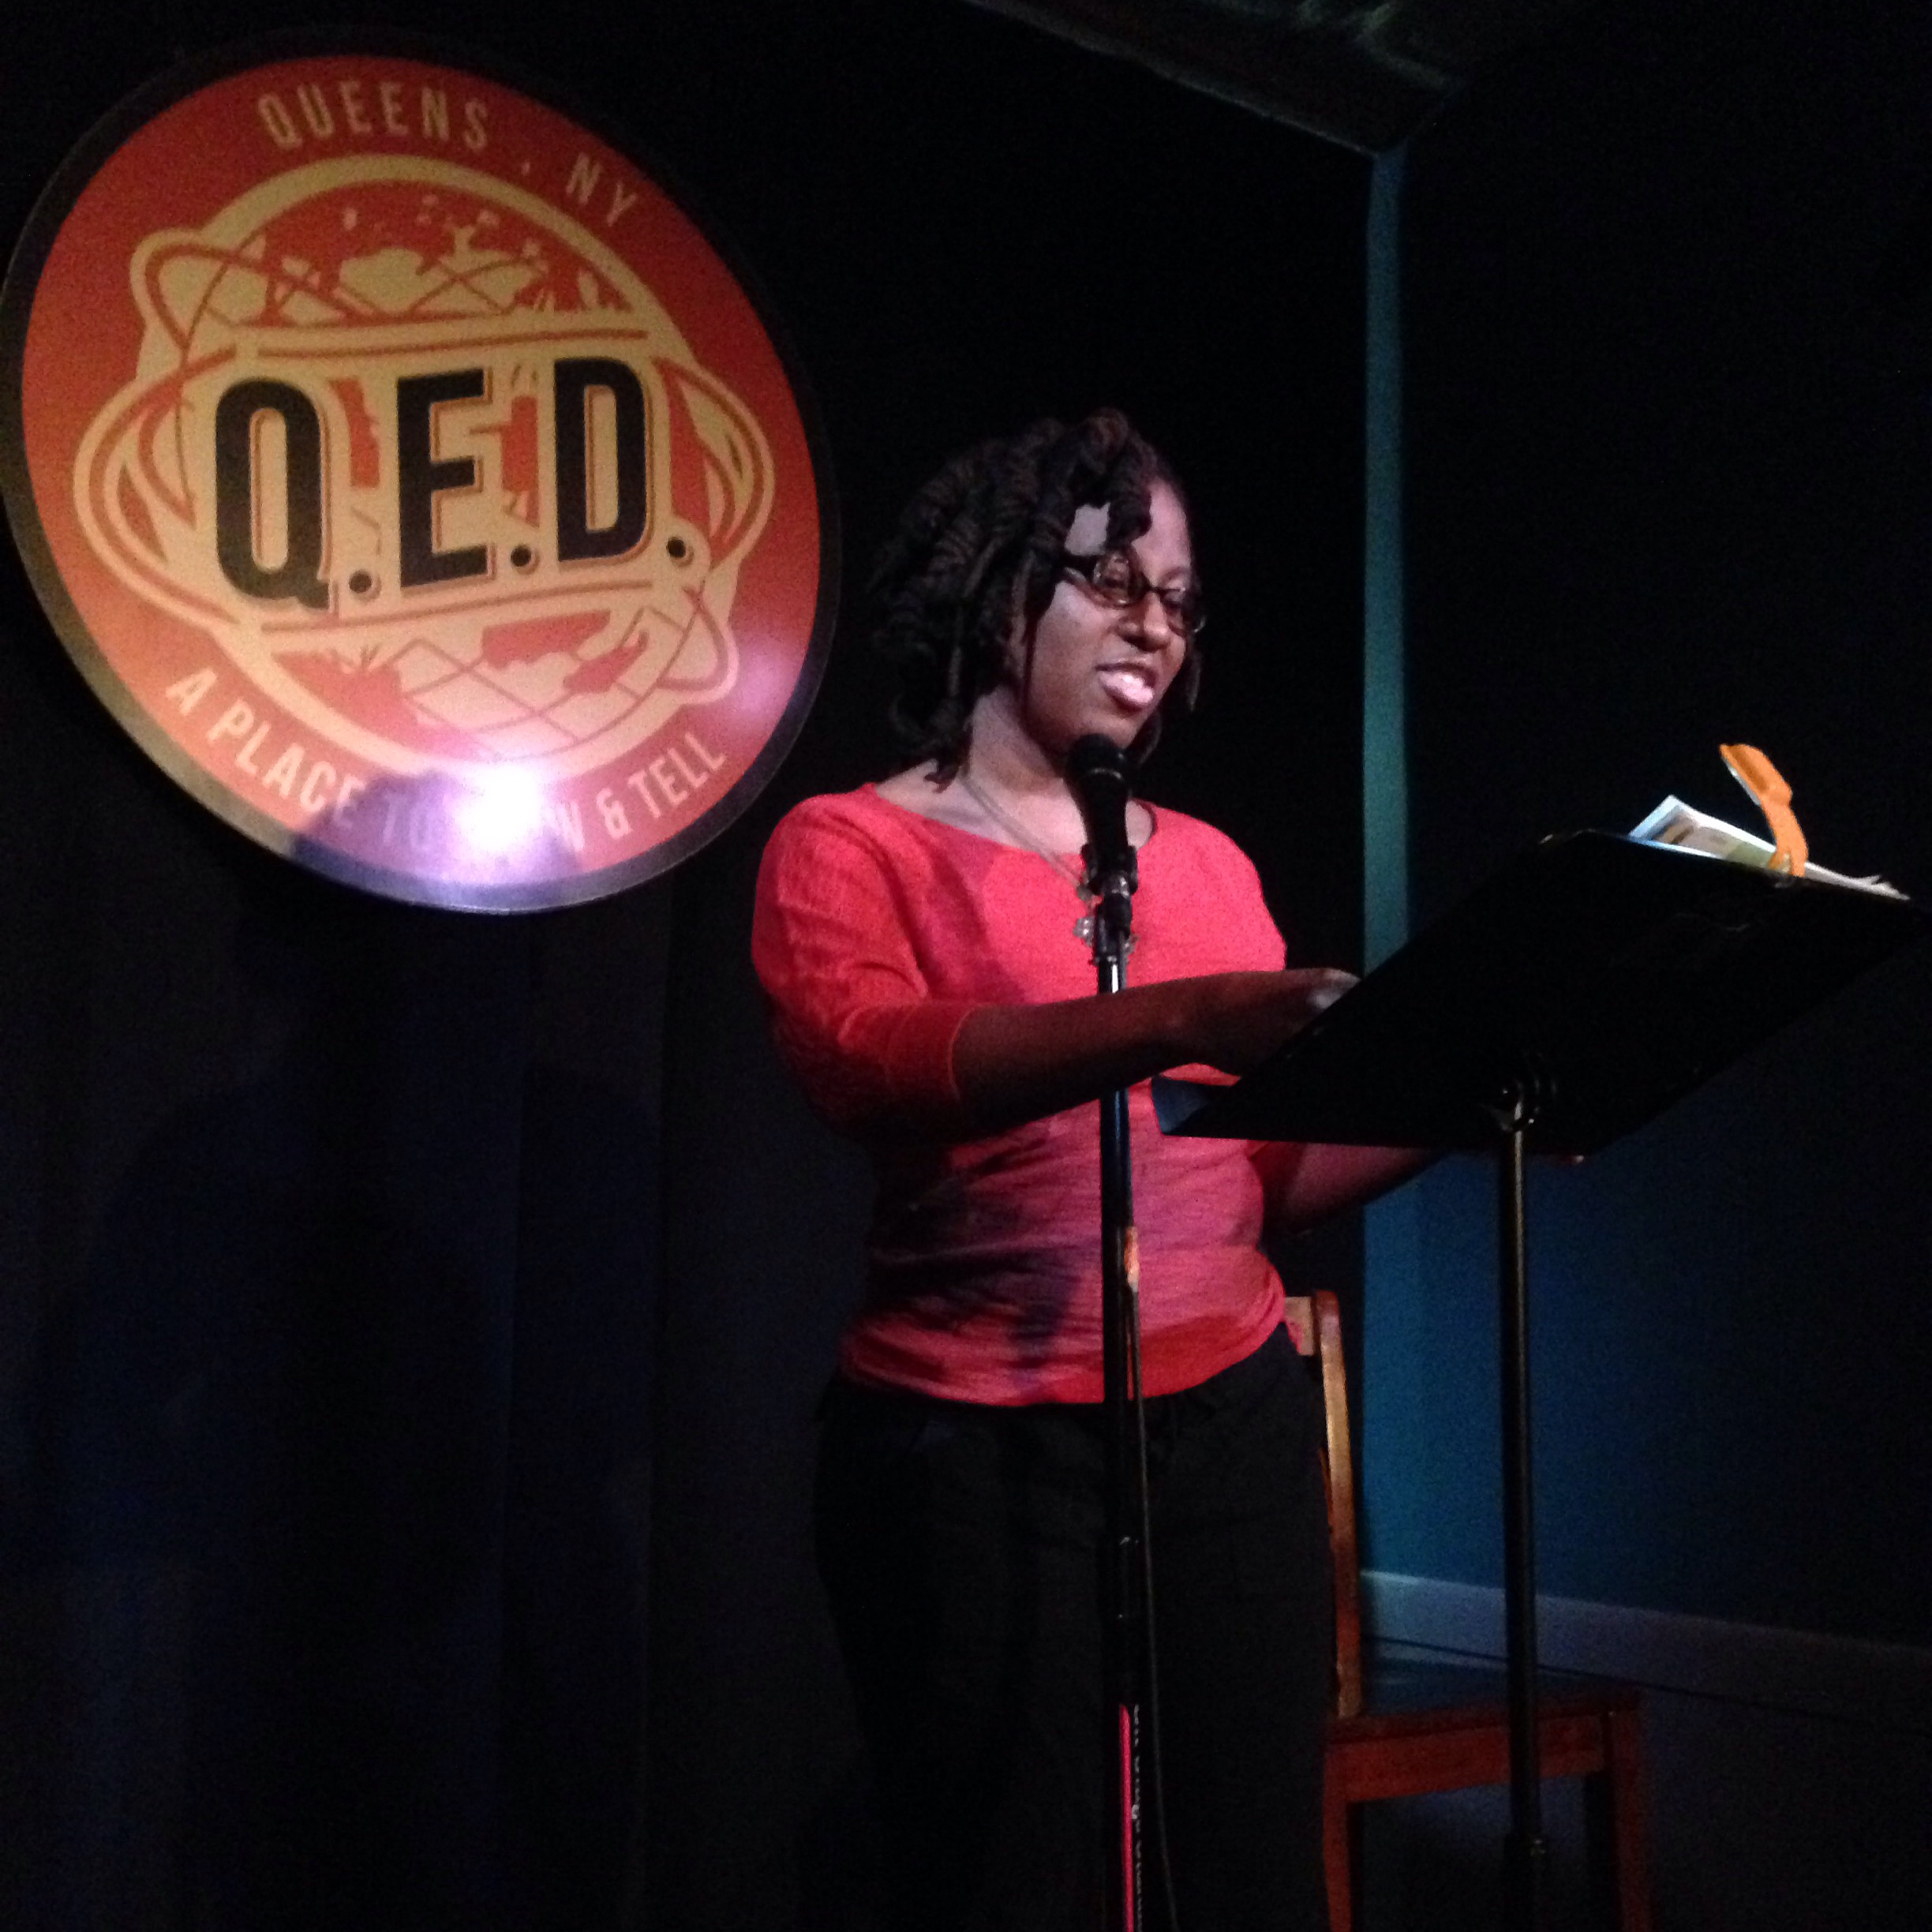 Sherese Francis reads at Line Break #1 at Q.E.D. in Astoria, Queens, March 5, 2016